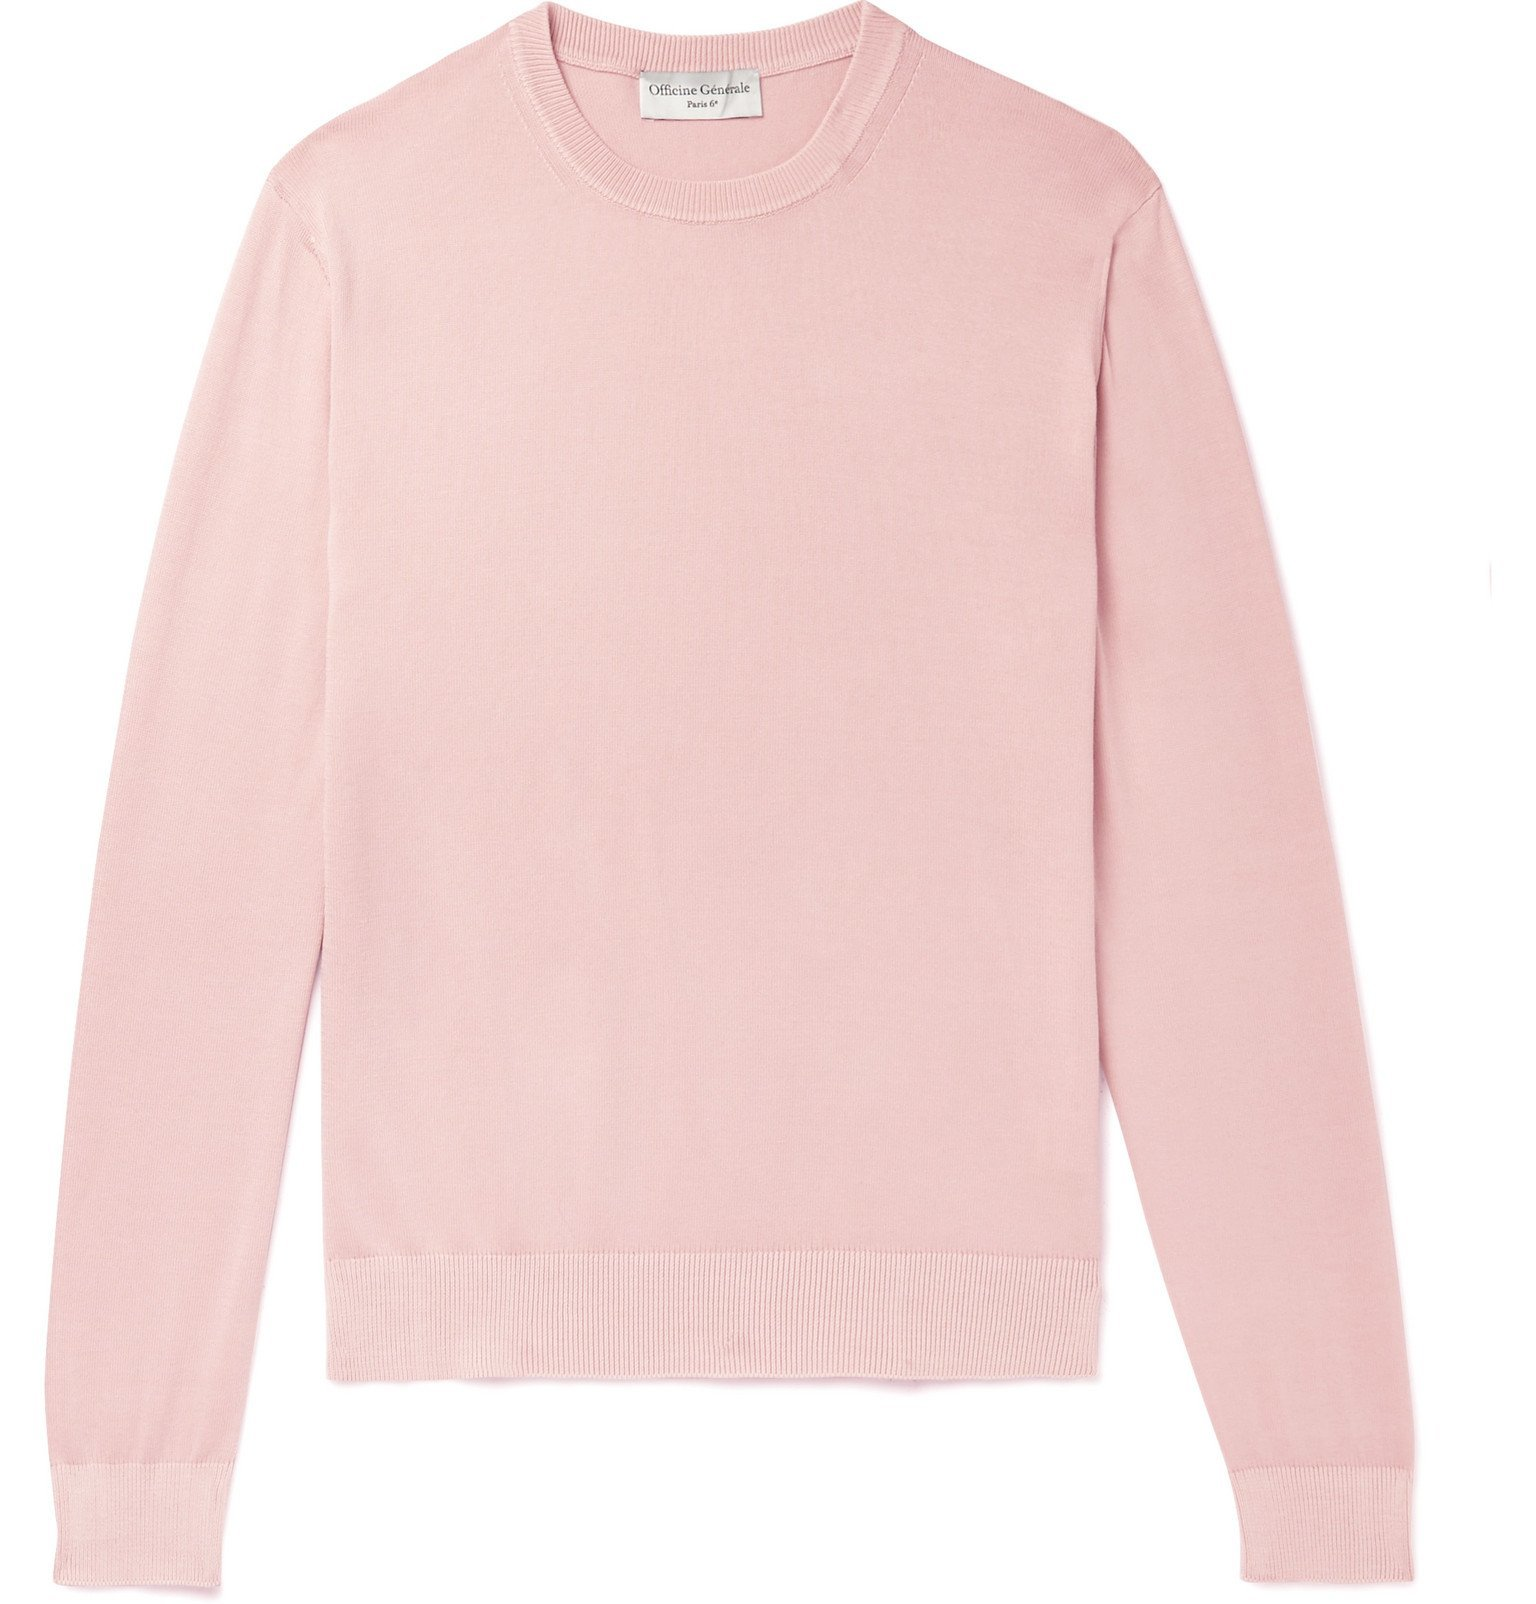 Officine Generale - Neils Cotton Sweater - Pink